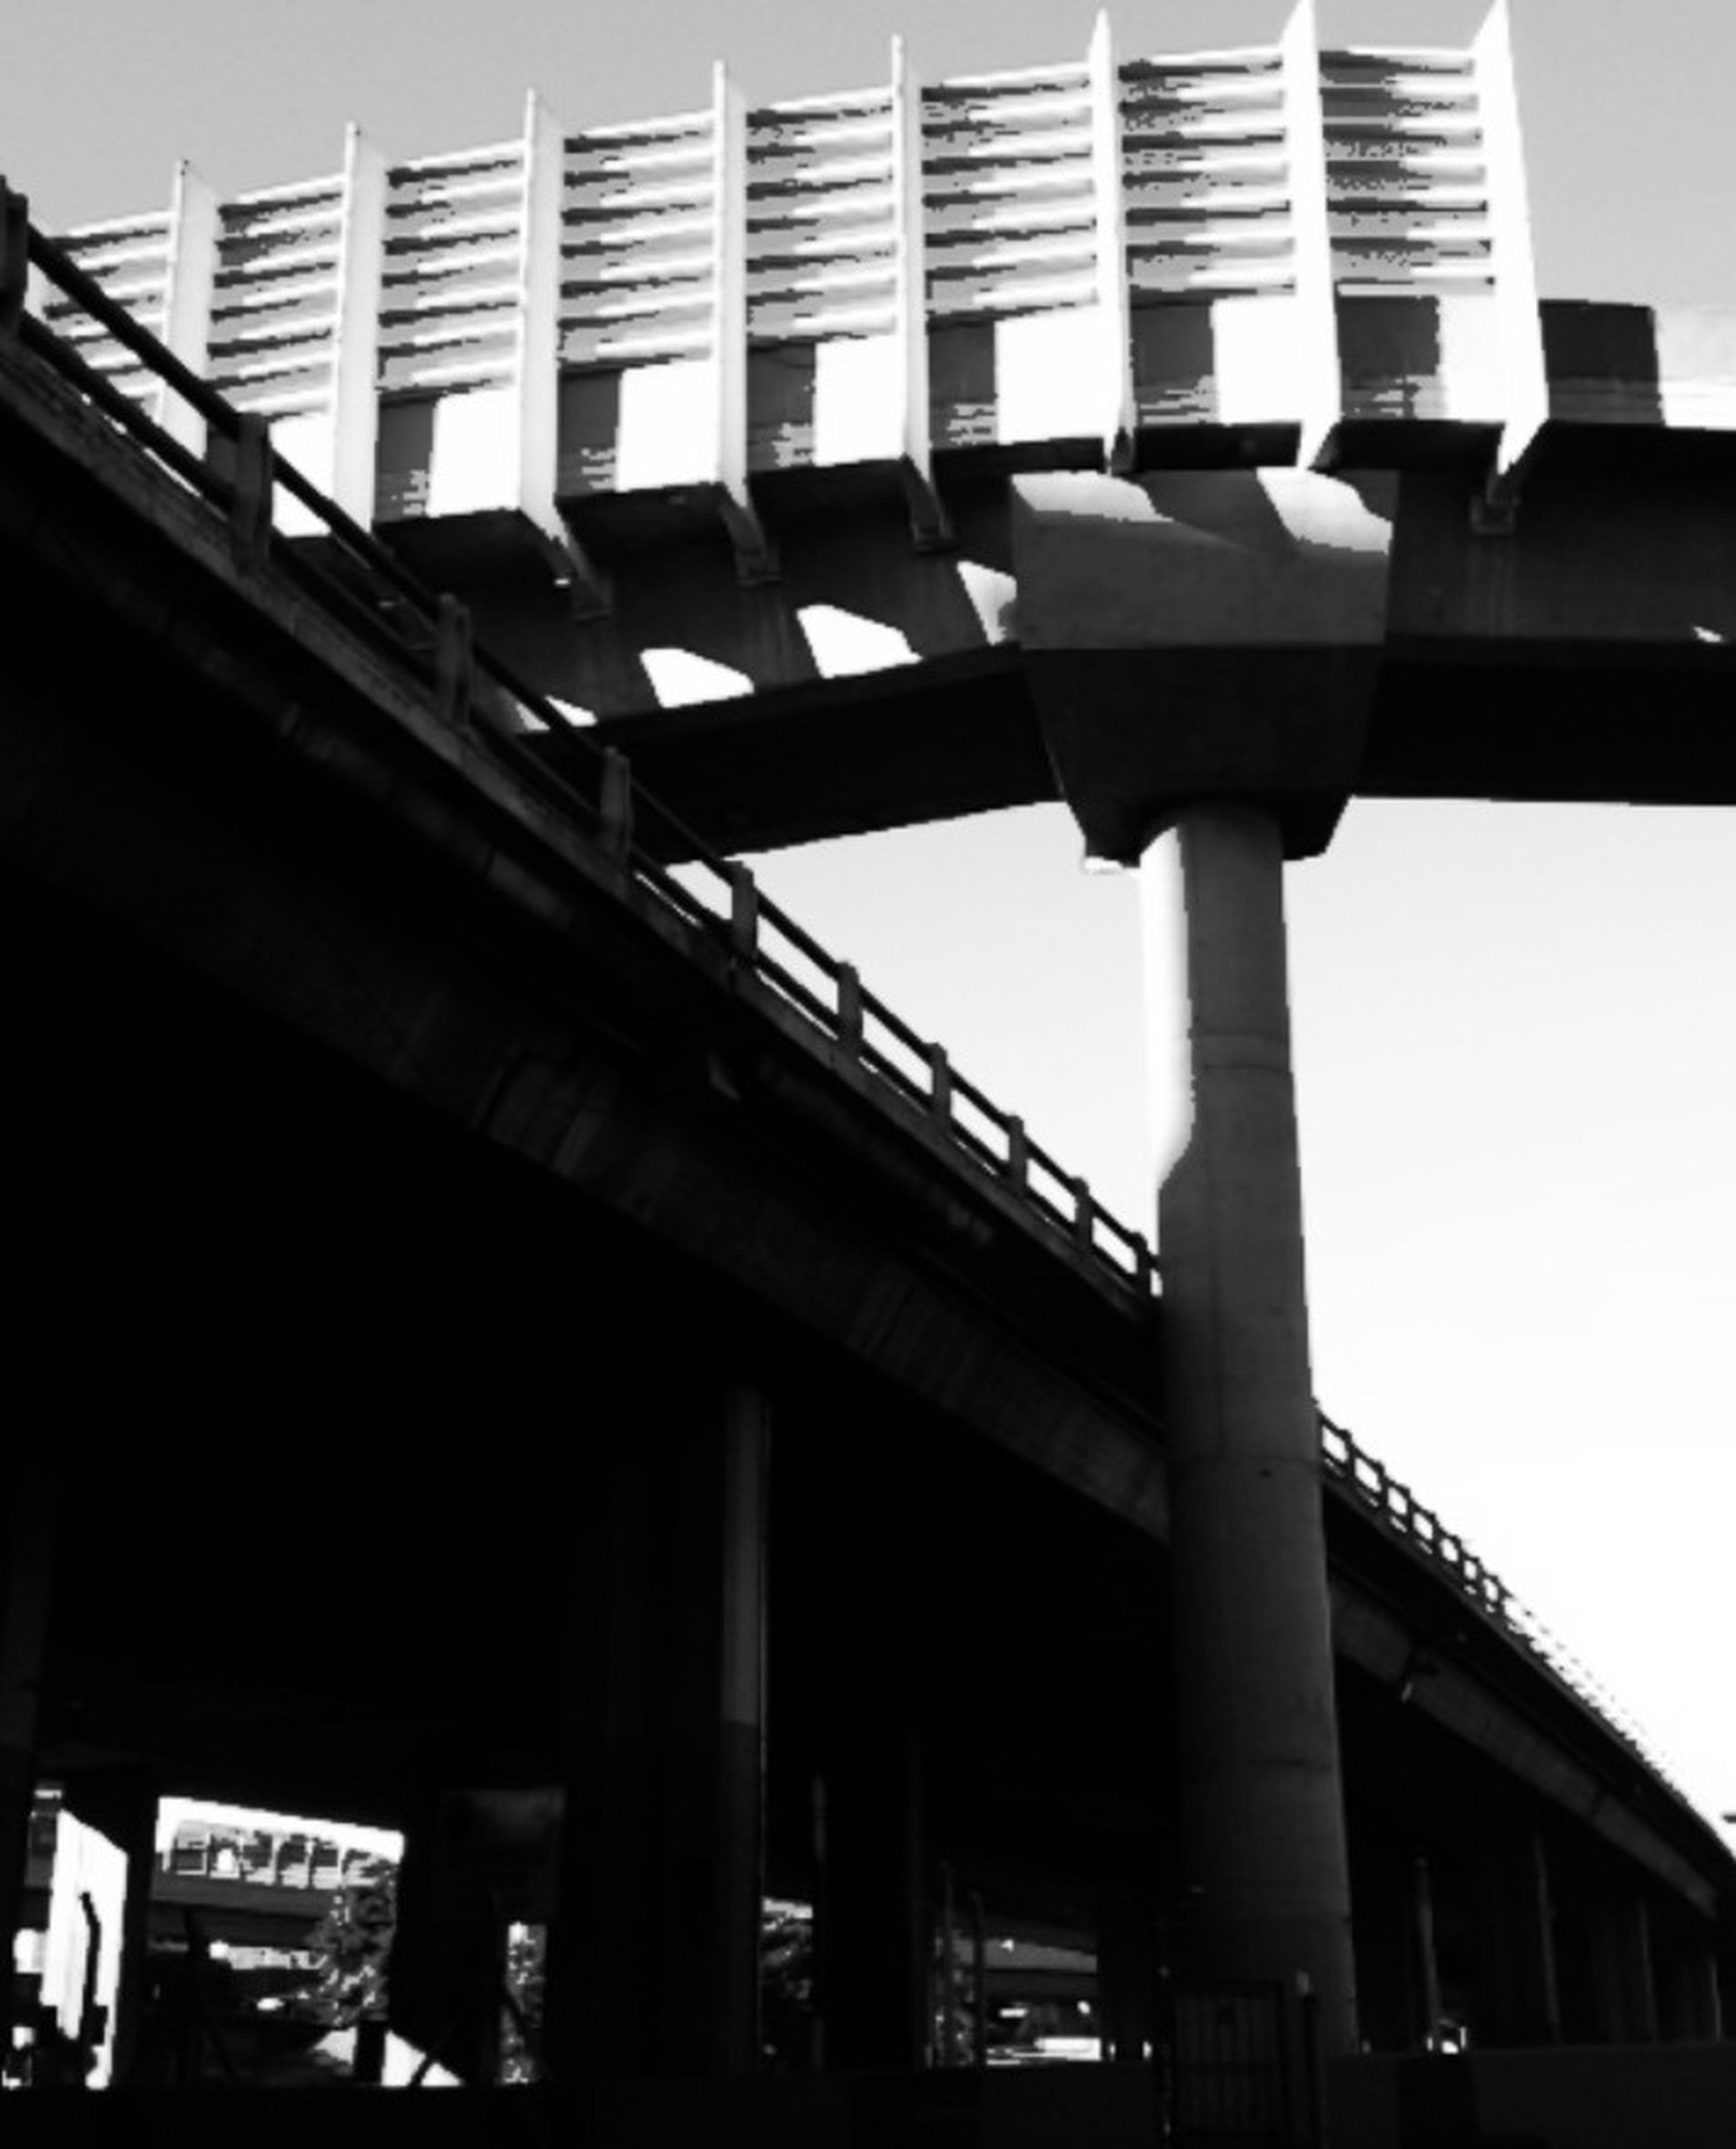 architecture, built structure, low angle view, building exterior, city, connection, clear sky, bridge - man made structure, modern, building, engineering, architectural column, sky, outdoors, no people, day, transportation, street light, city life, bridge